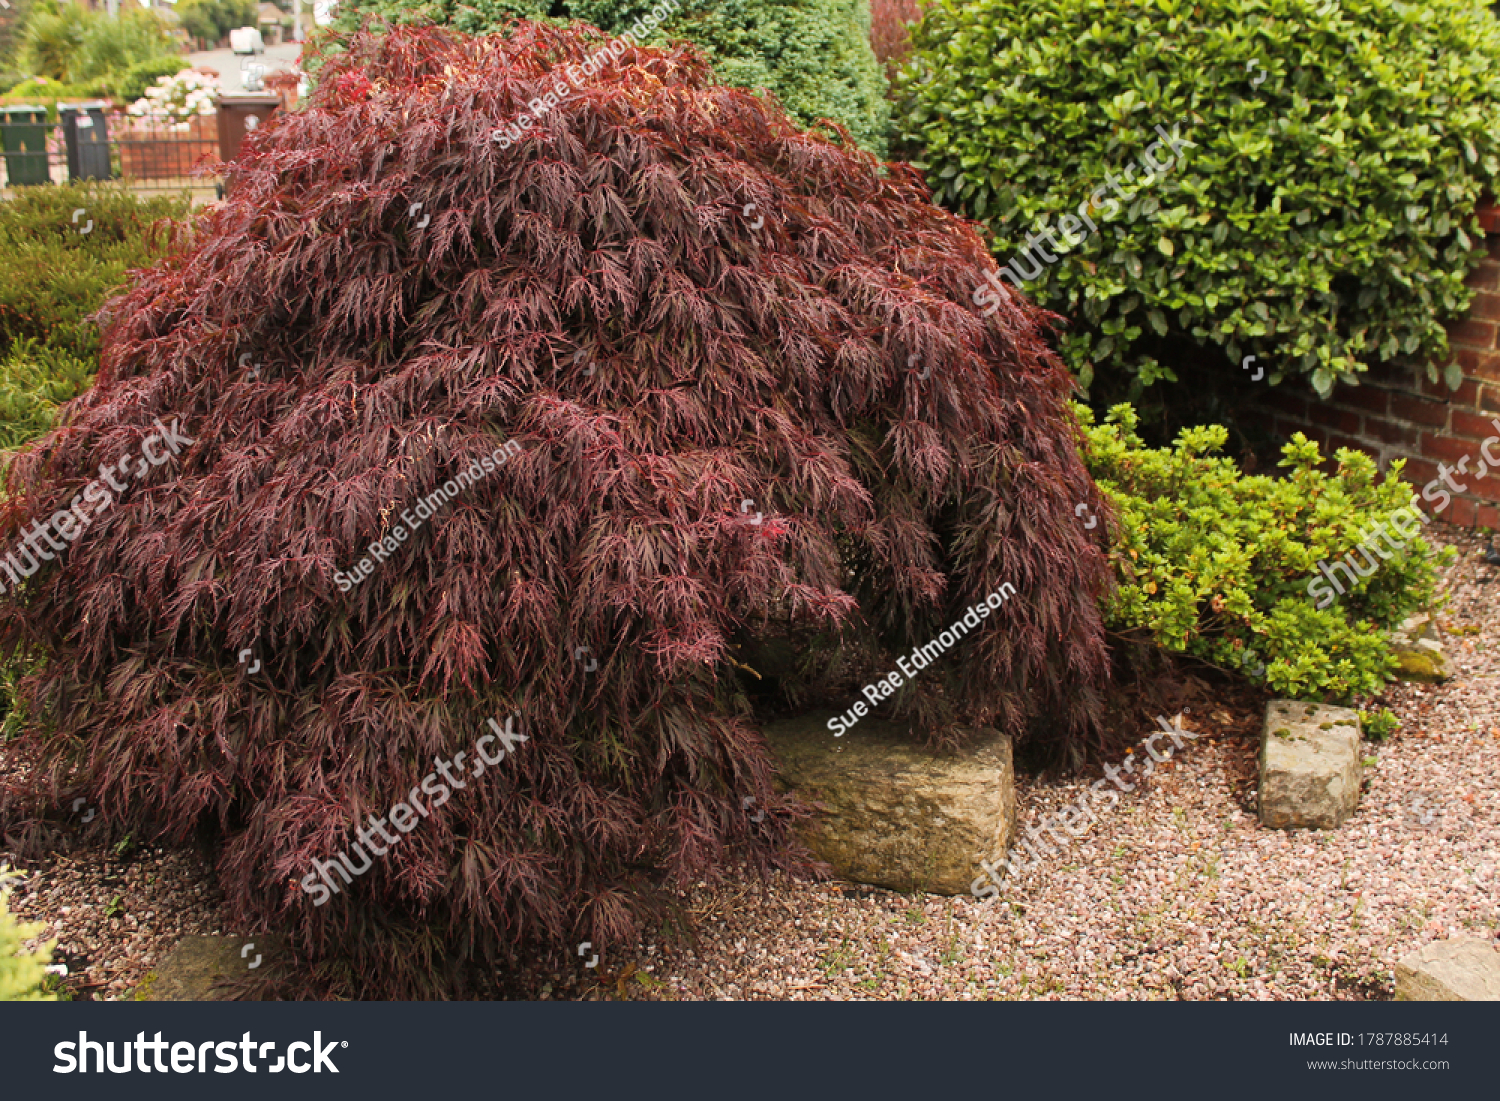 lace leaf Japanese maple, low growing shrub in a rock garden